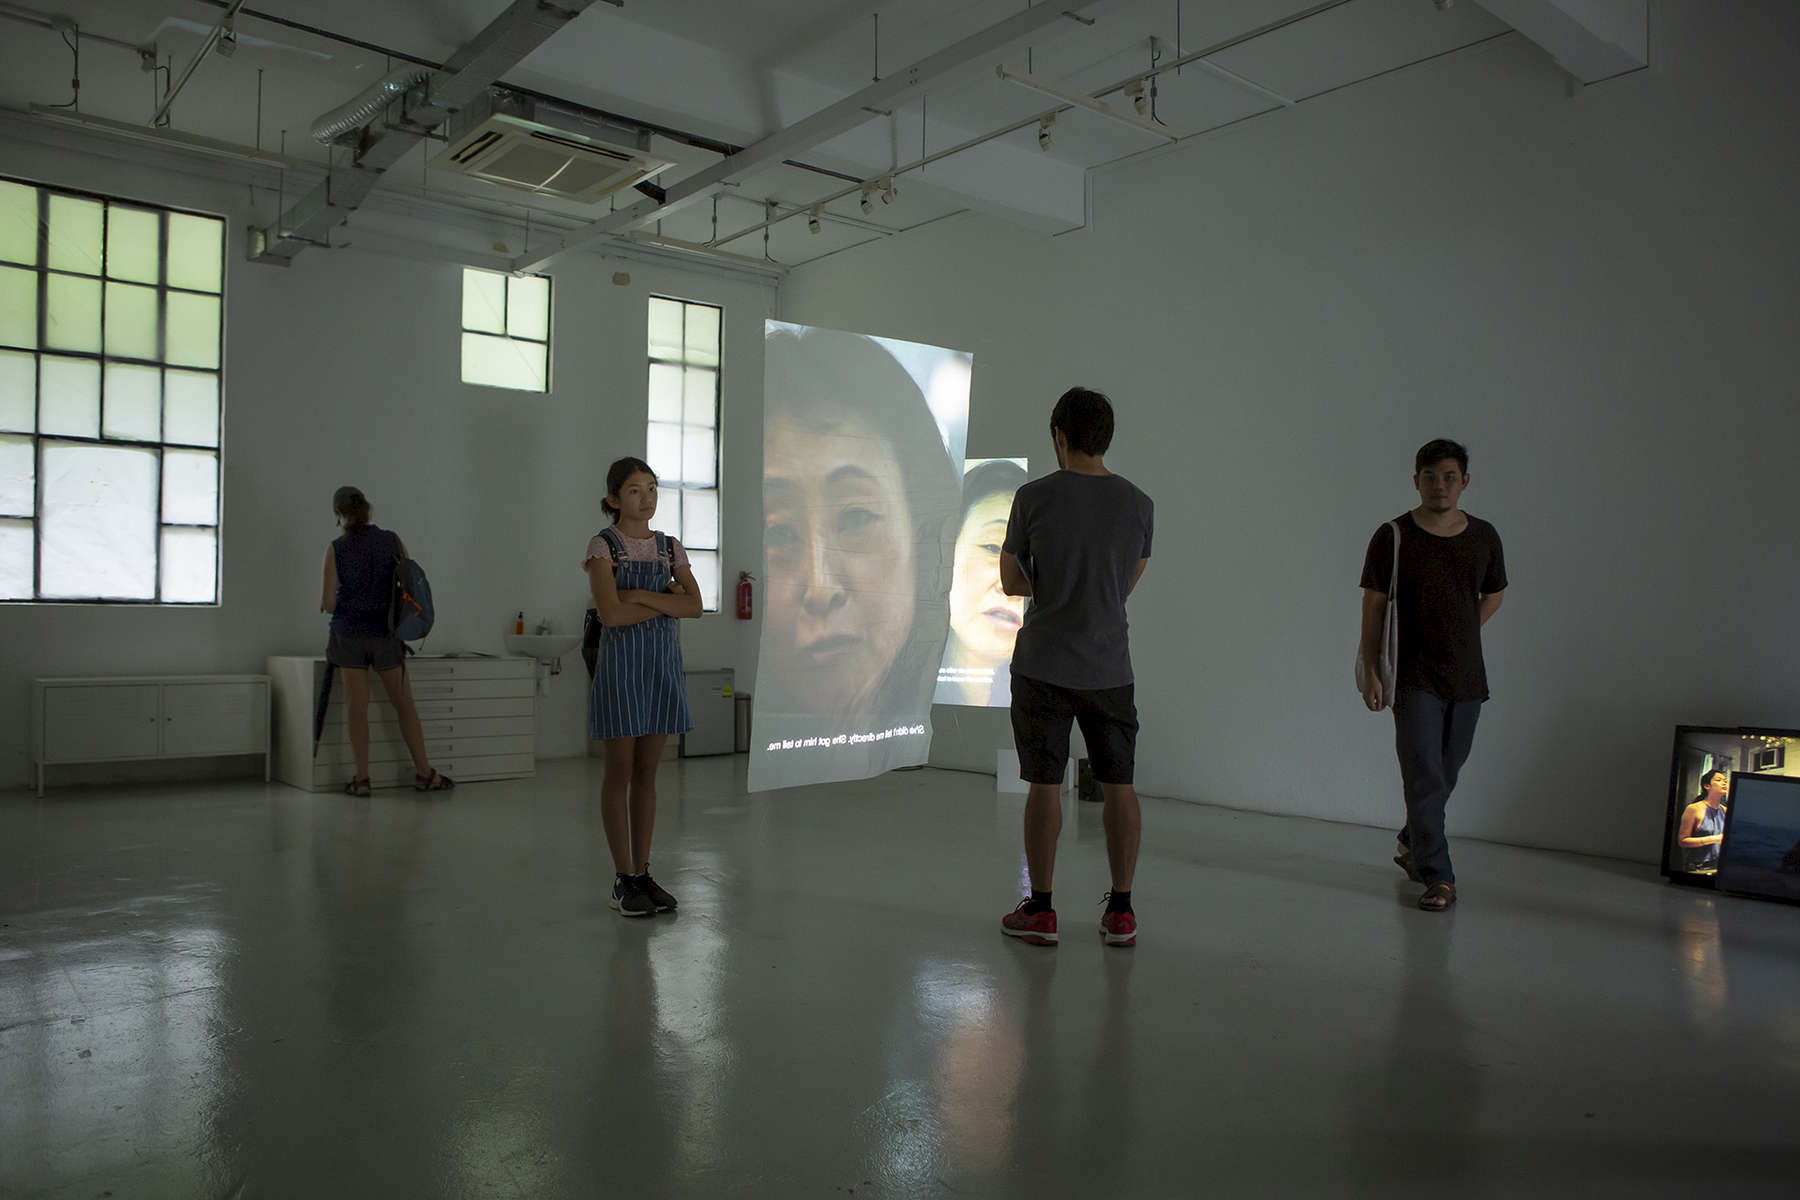 I will be holding a conversation withh Fangtze Hsu titled Seeing Another: Working with and through Representation at NTU CCA at Gillman Barracks, Singapore on Sept 10, 2019, 7pm.Image: Studio of Wei Leng Tay, Residencies OPEN, 29 and 30 June 2019. Courtesy NTU CCA Singapore.